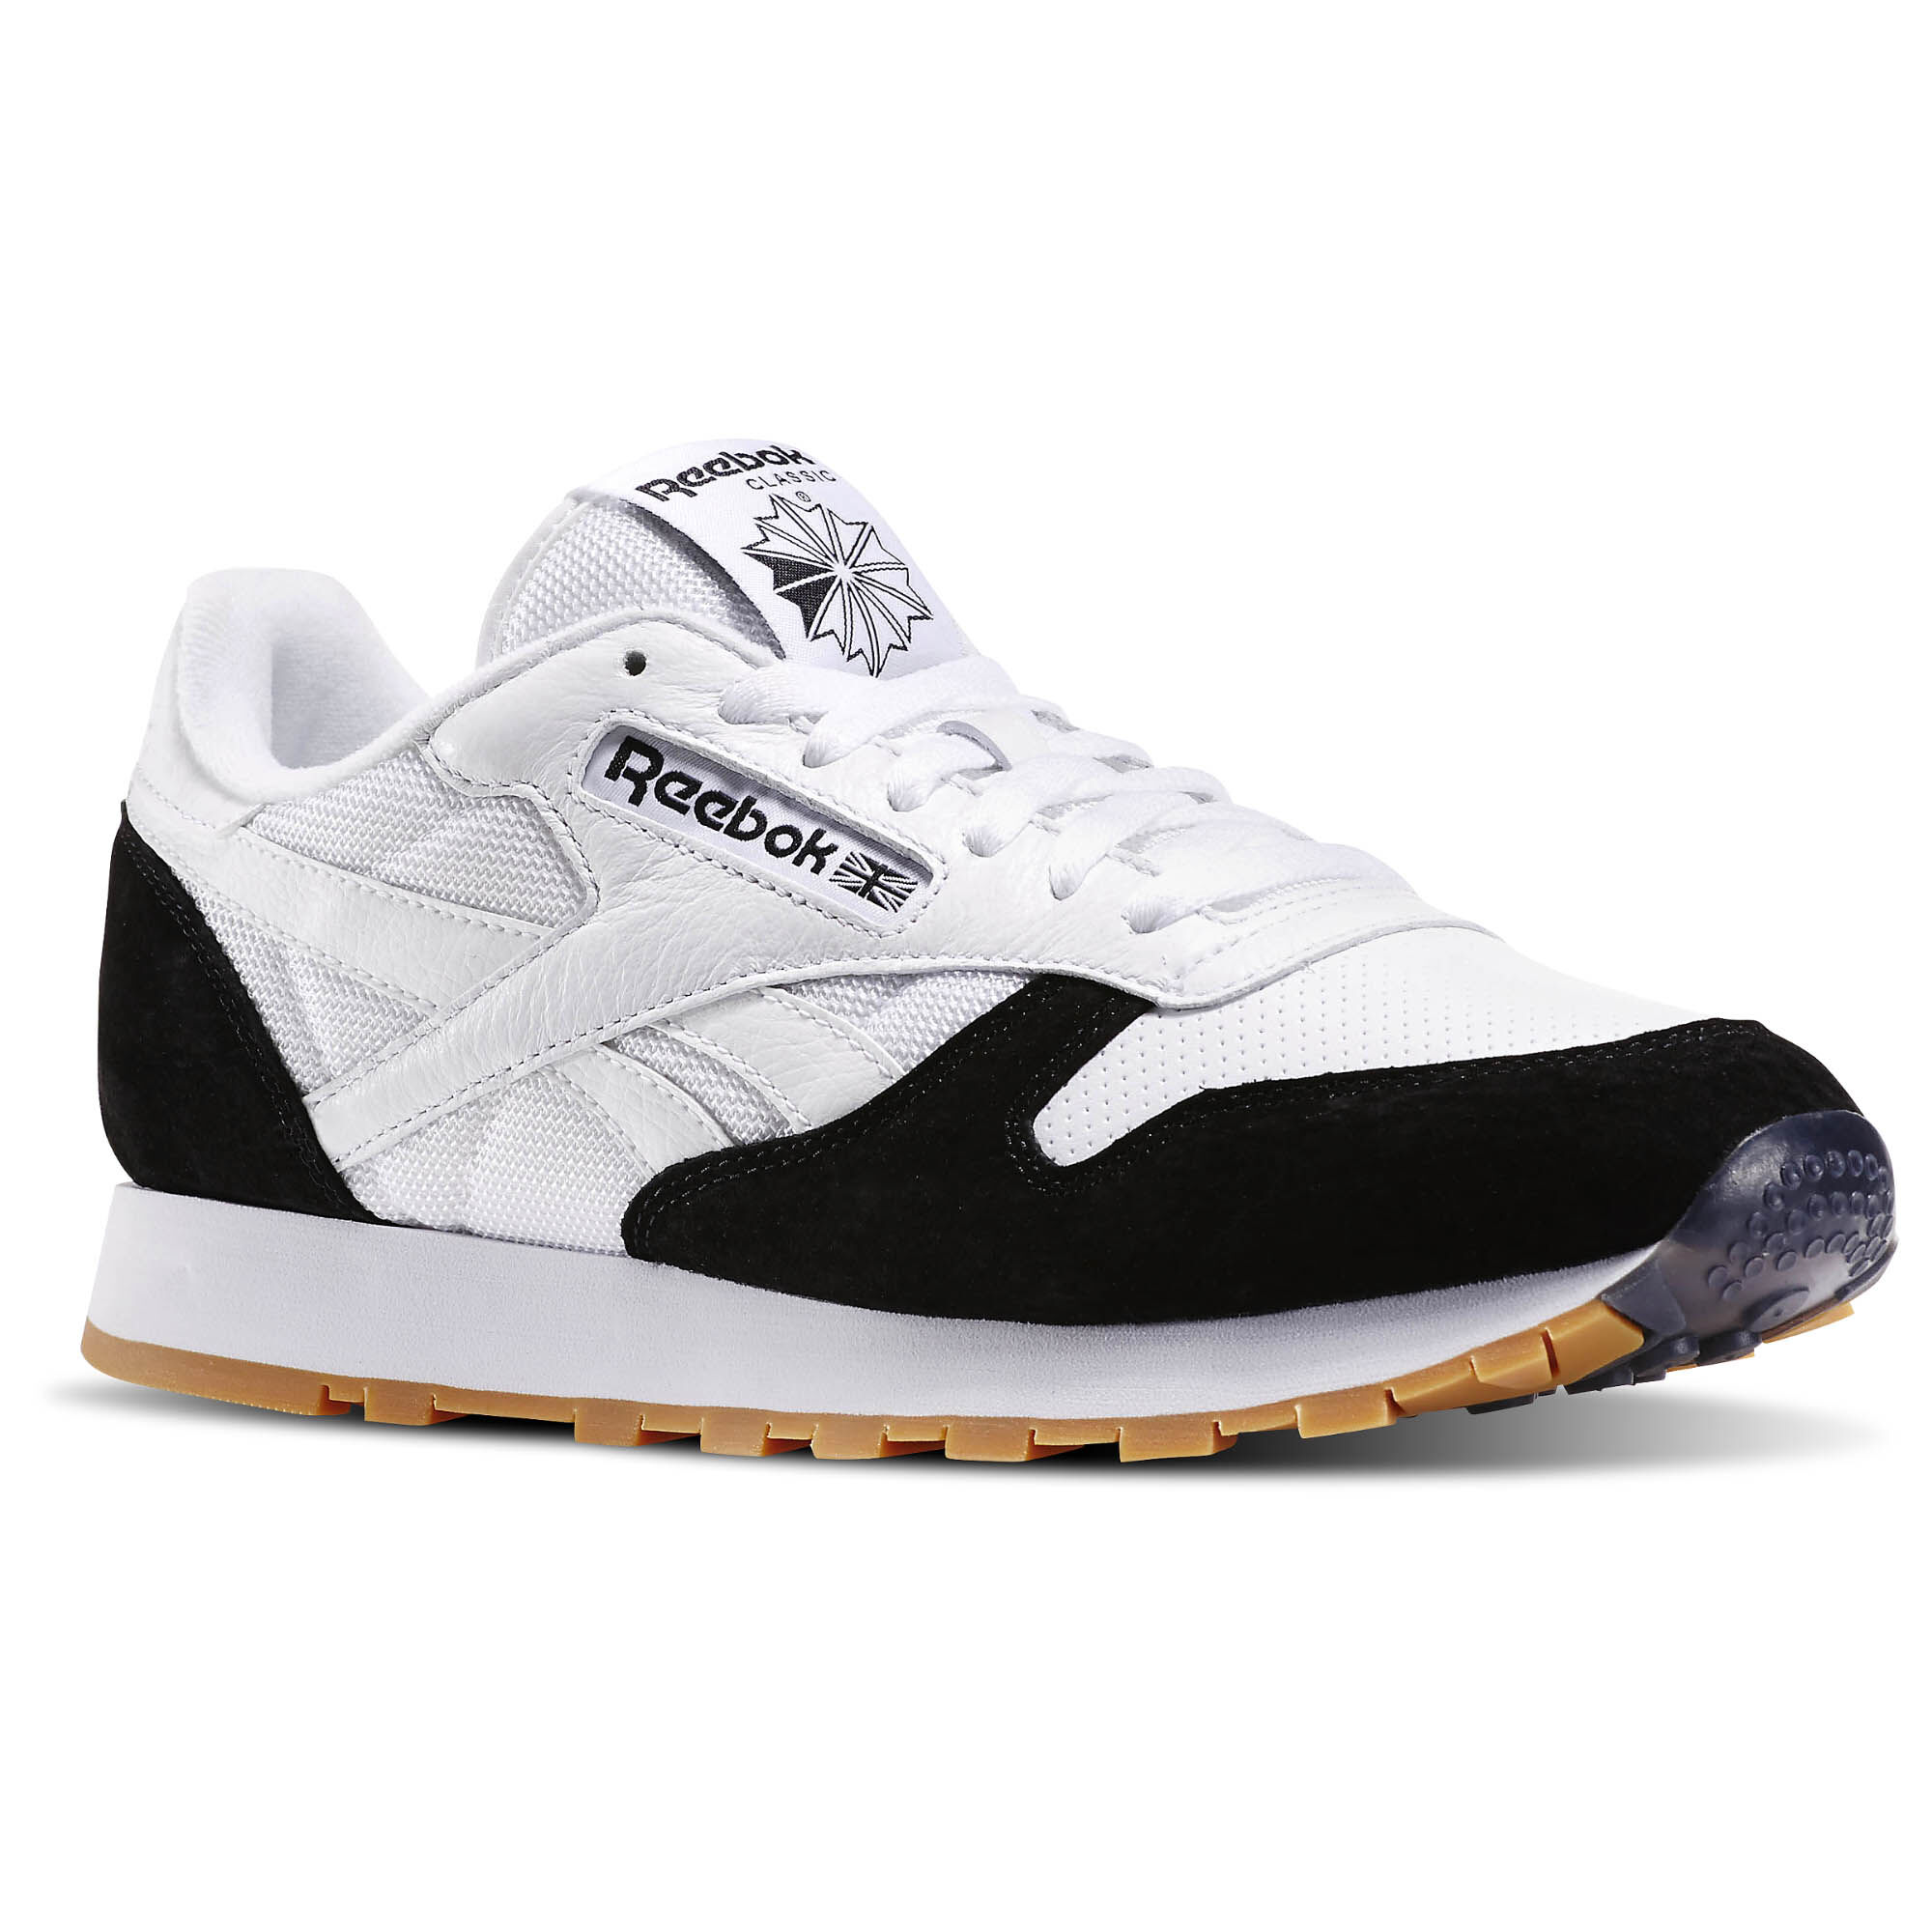 ca8f21b5c62 WASTE TO ENERGY. reebok cl white